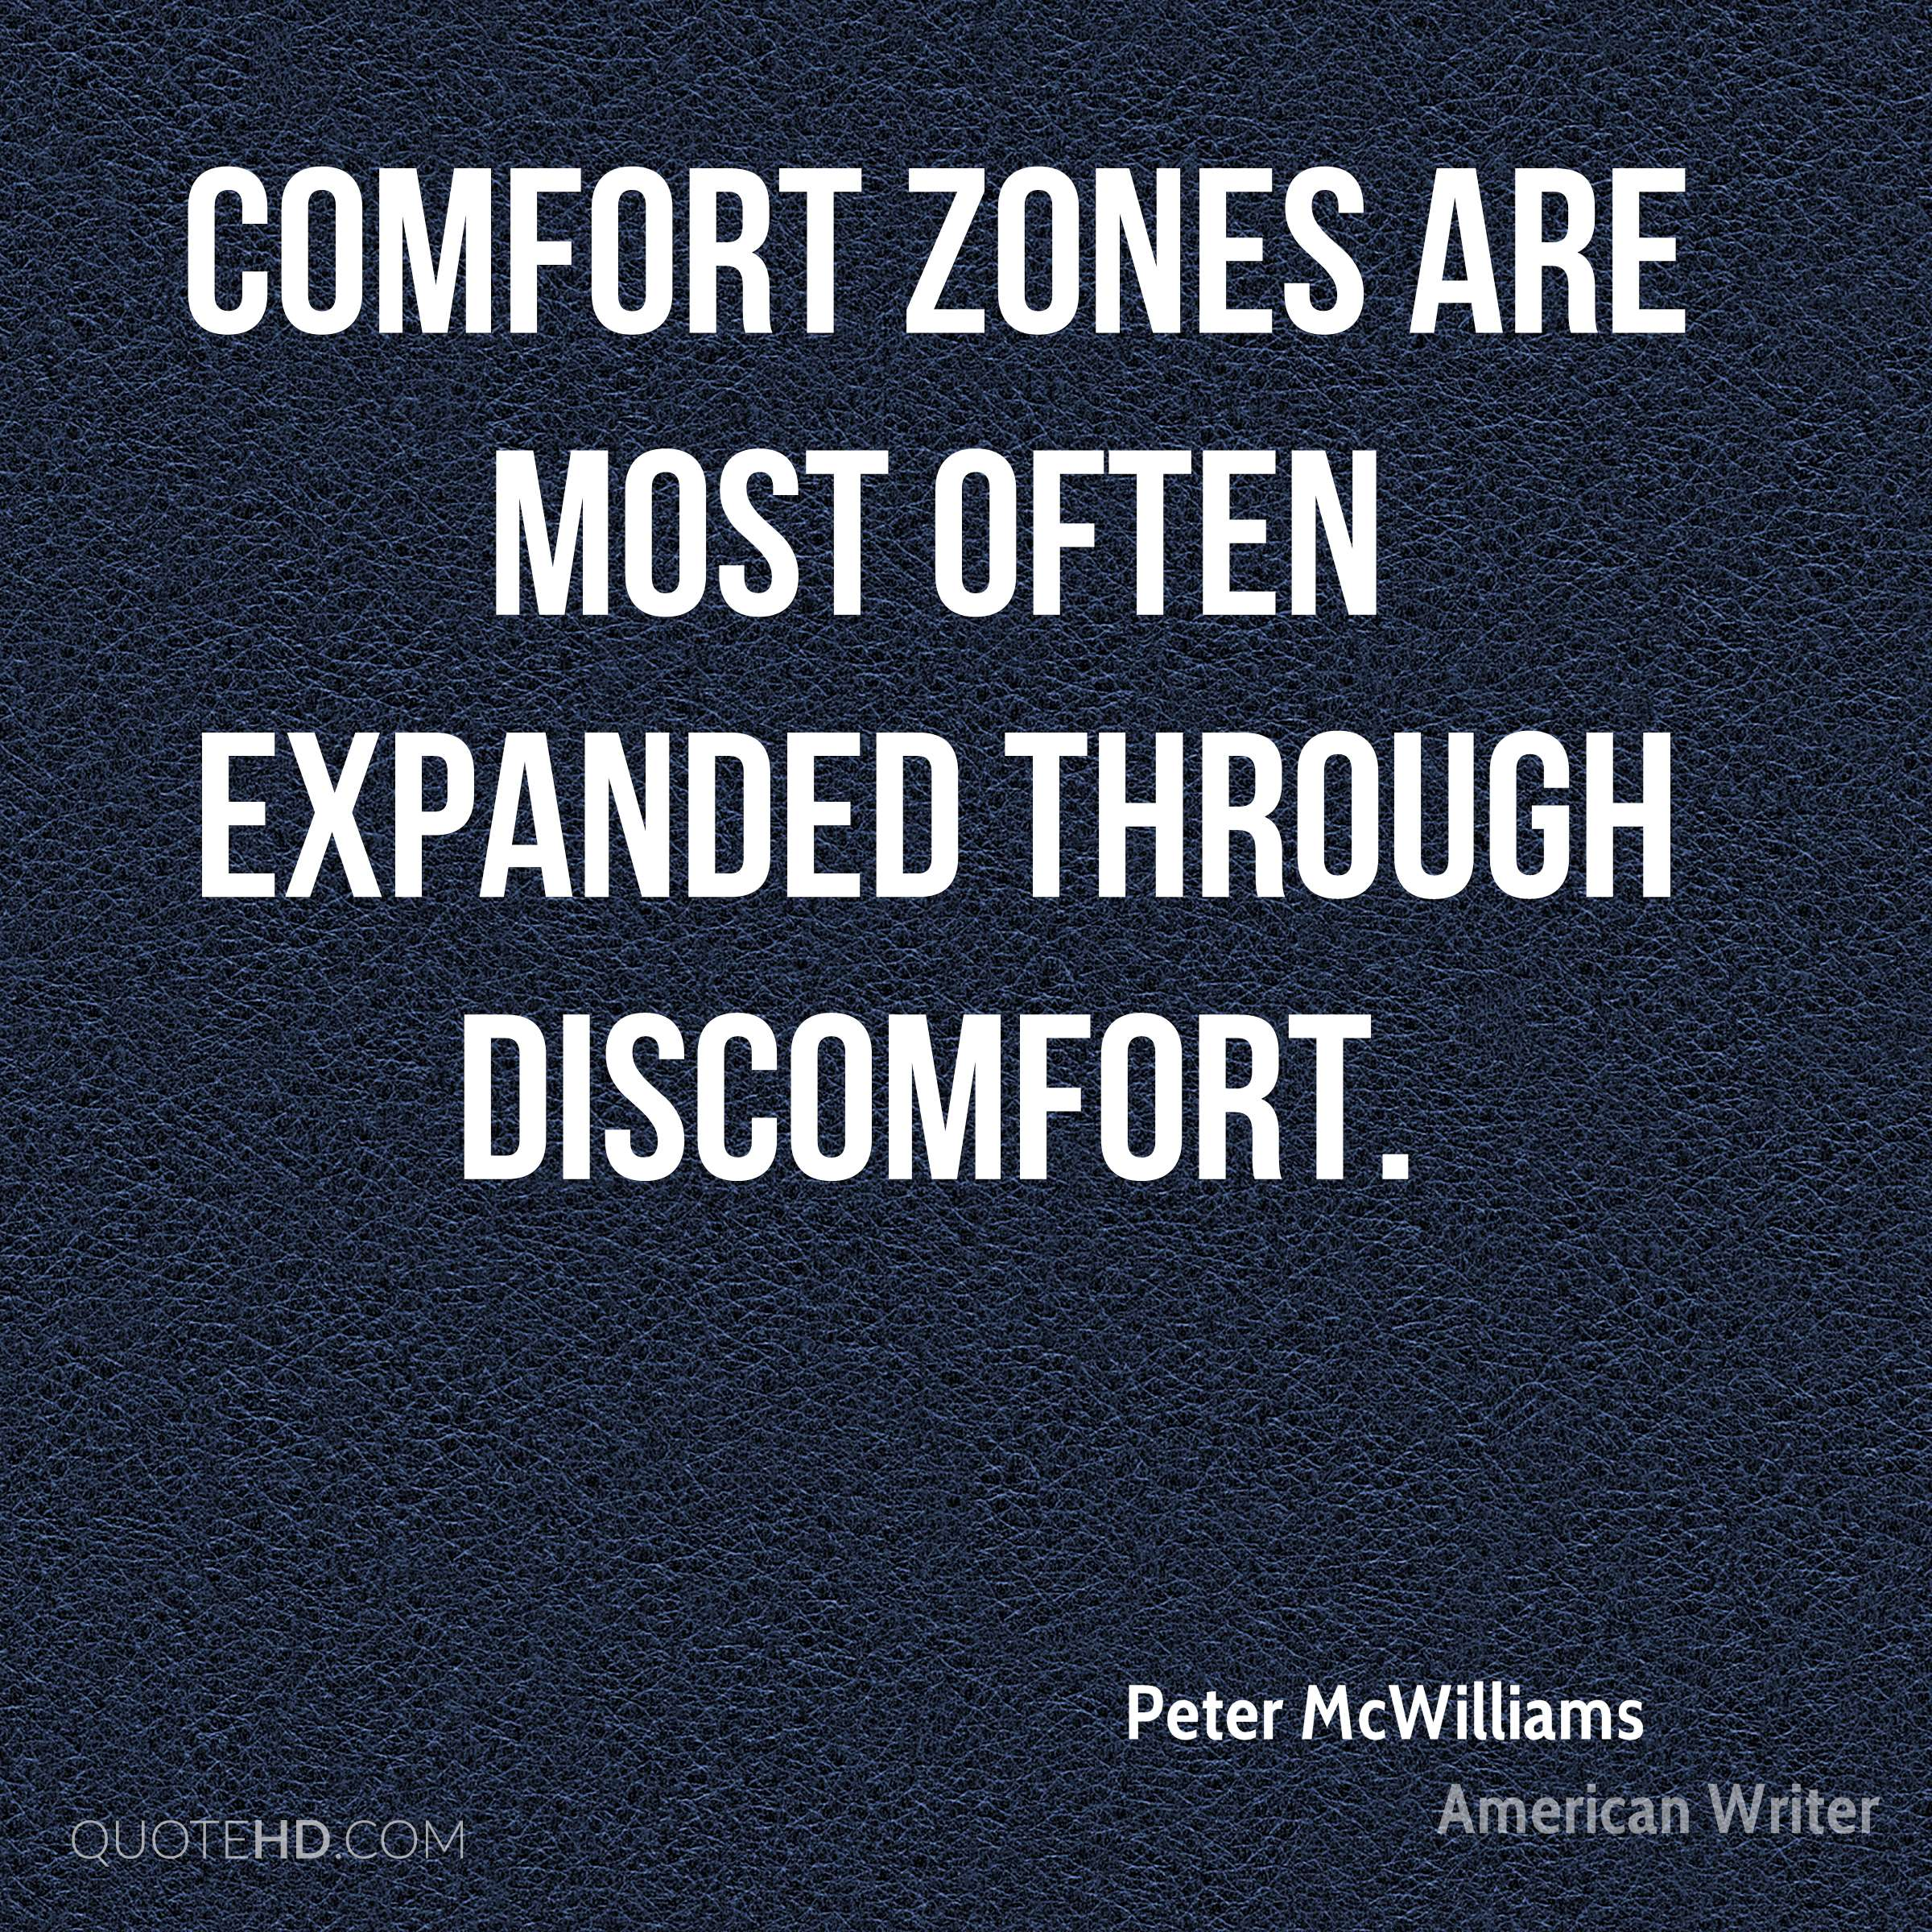 Comfort zones are most often expanded through discomfort.